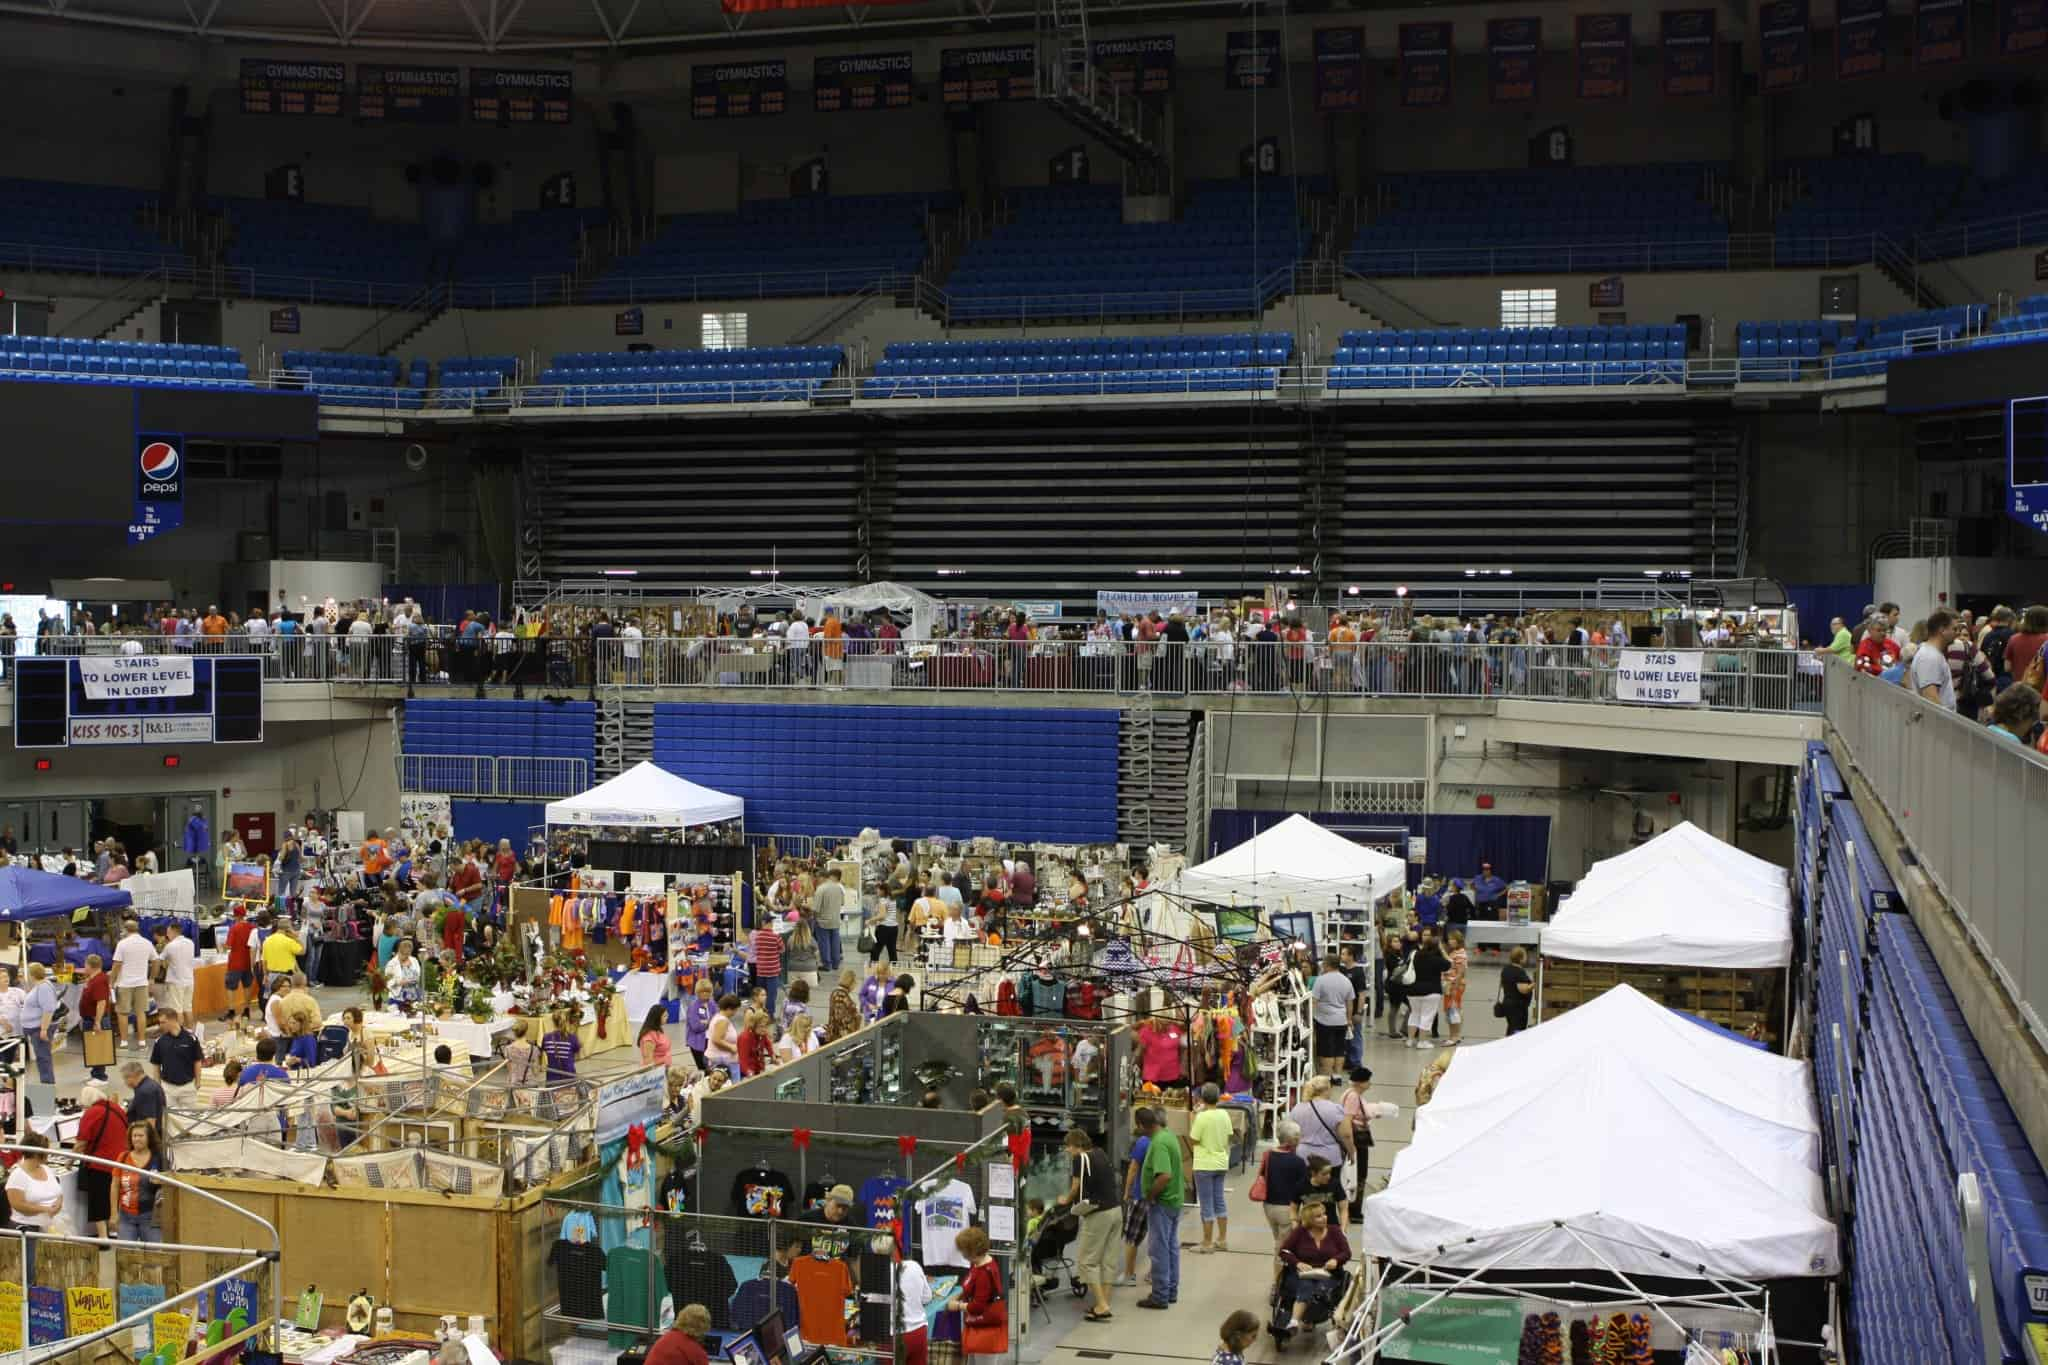 Craft Festival 2014 at The O'Connell Center